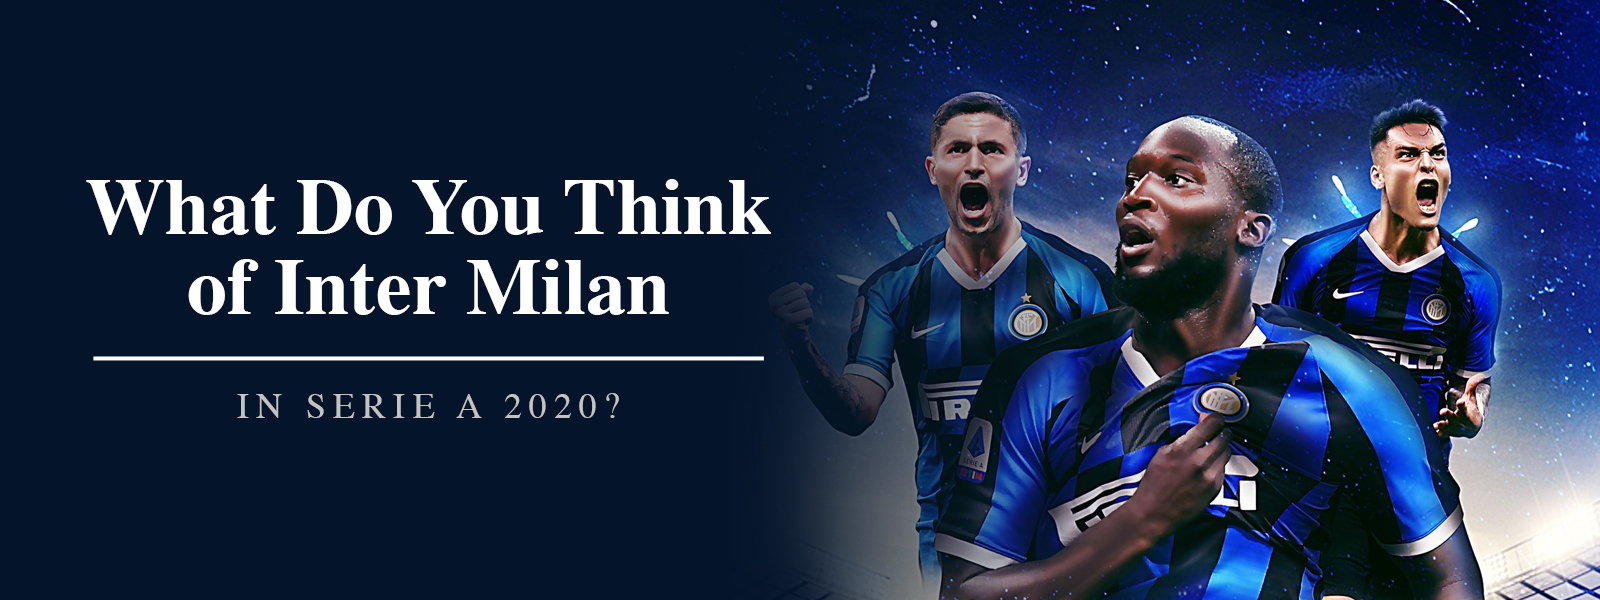 Inter Milan Perfomance In Serie A 2020